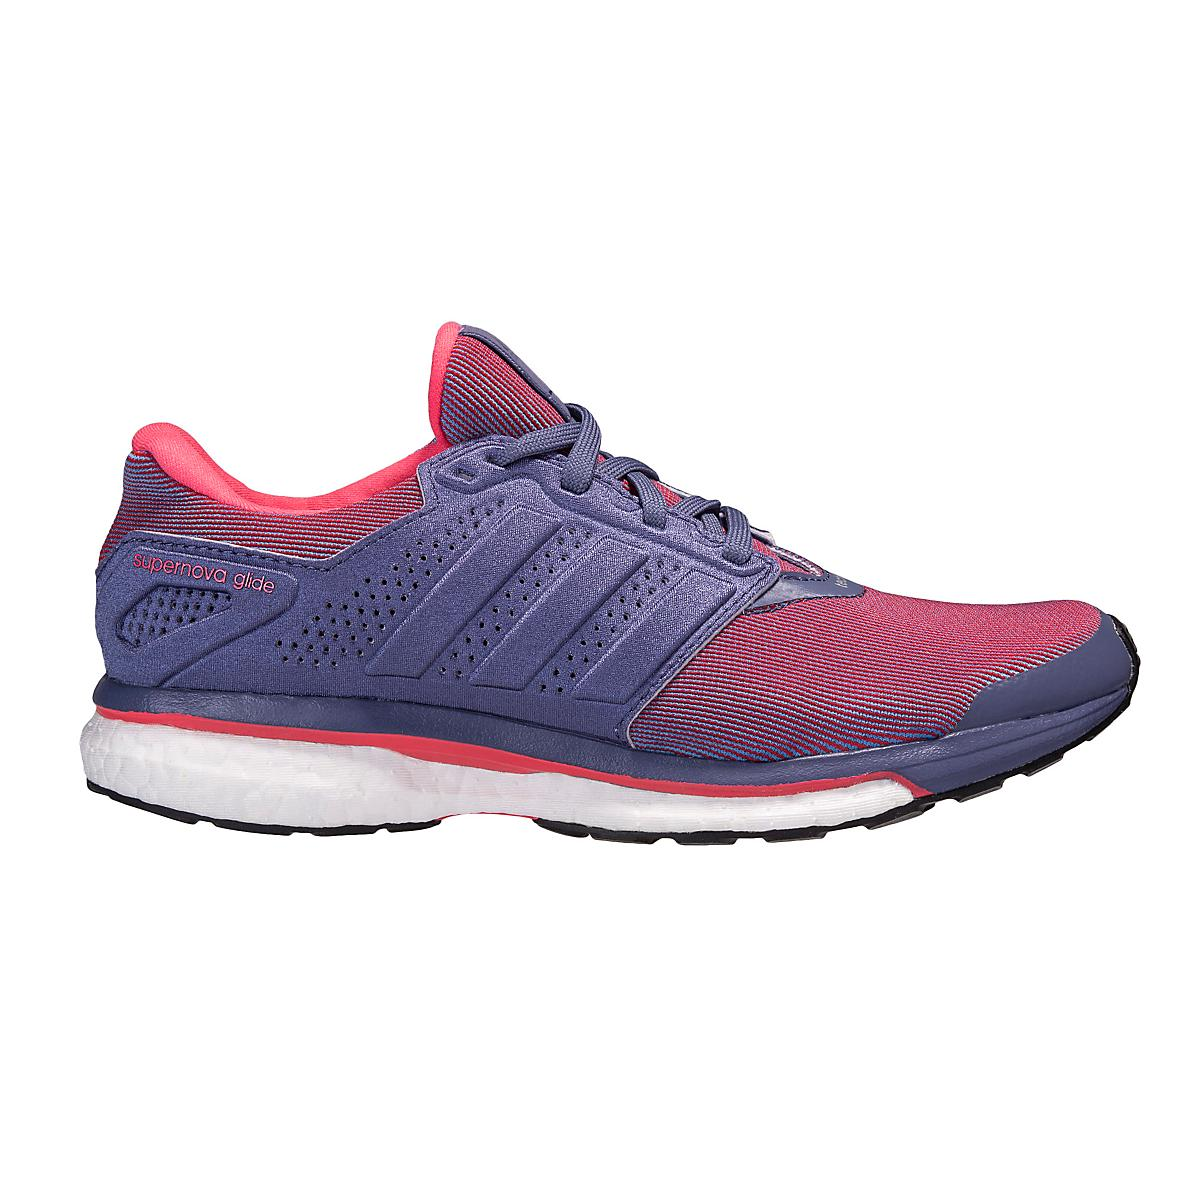 ada653d02 Womens adidas Supernova Glide 8 Running Shoe at Road Runner Sports